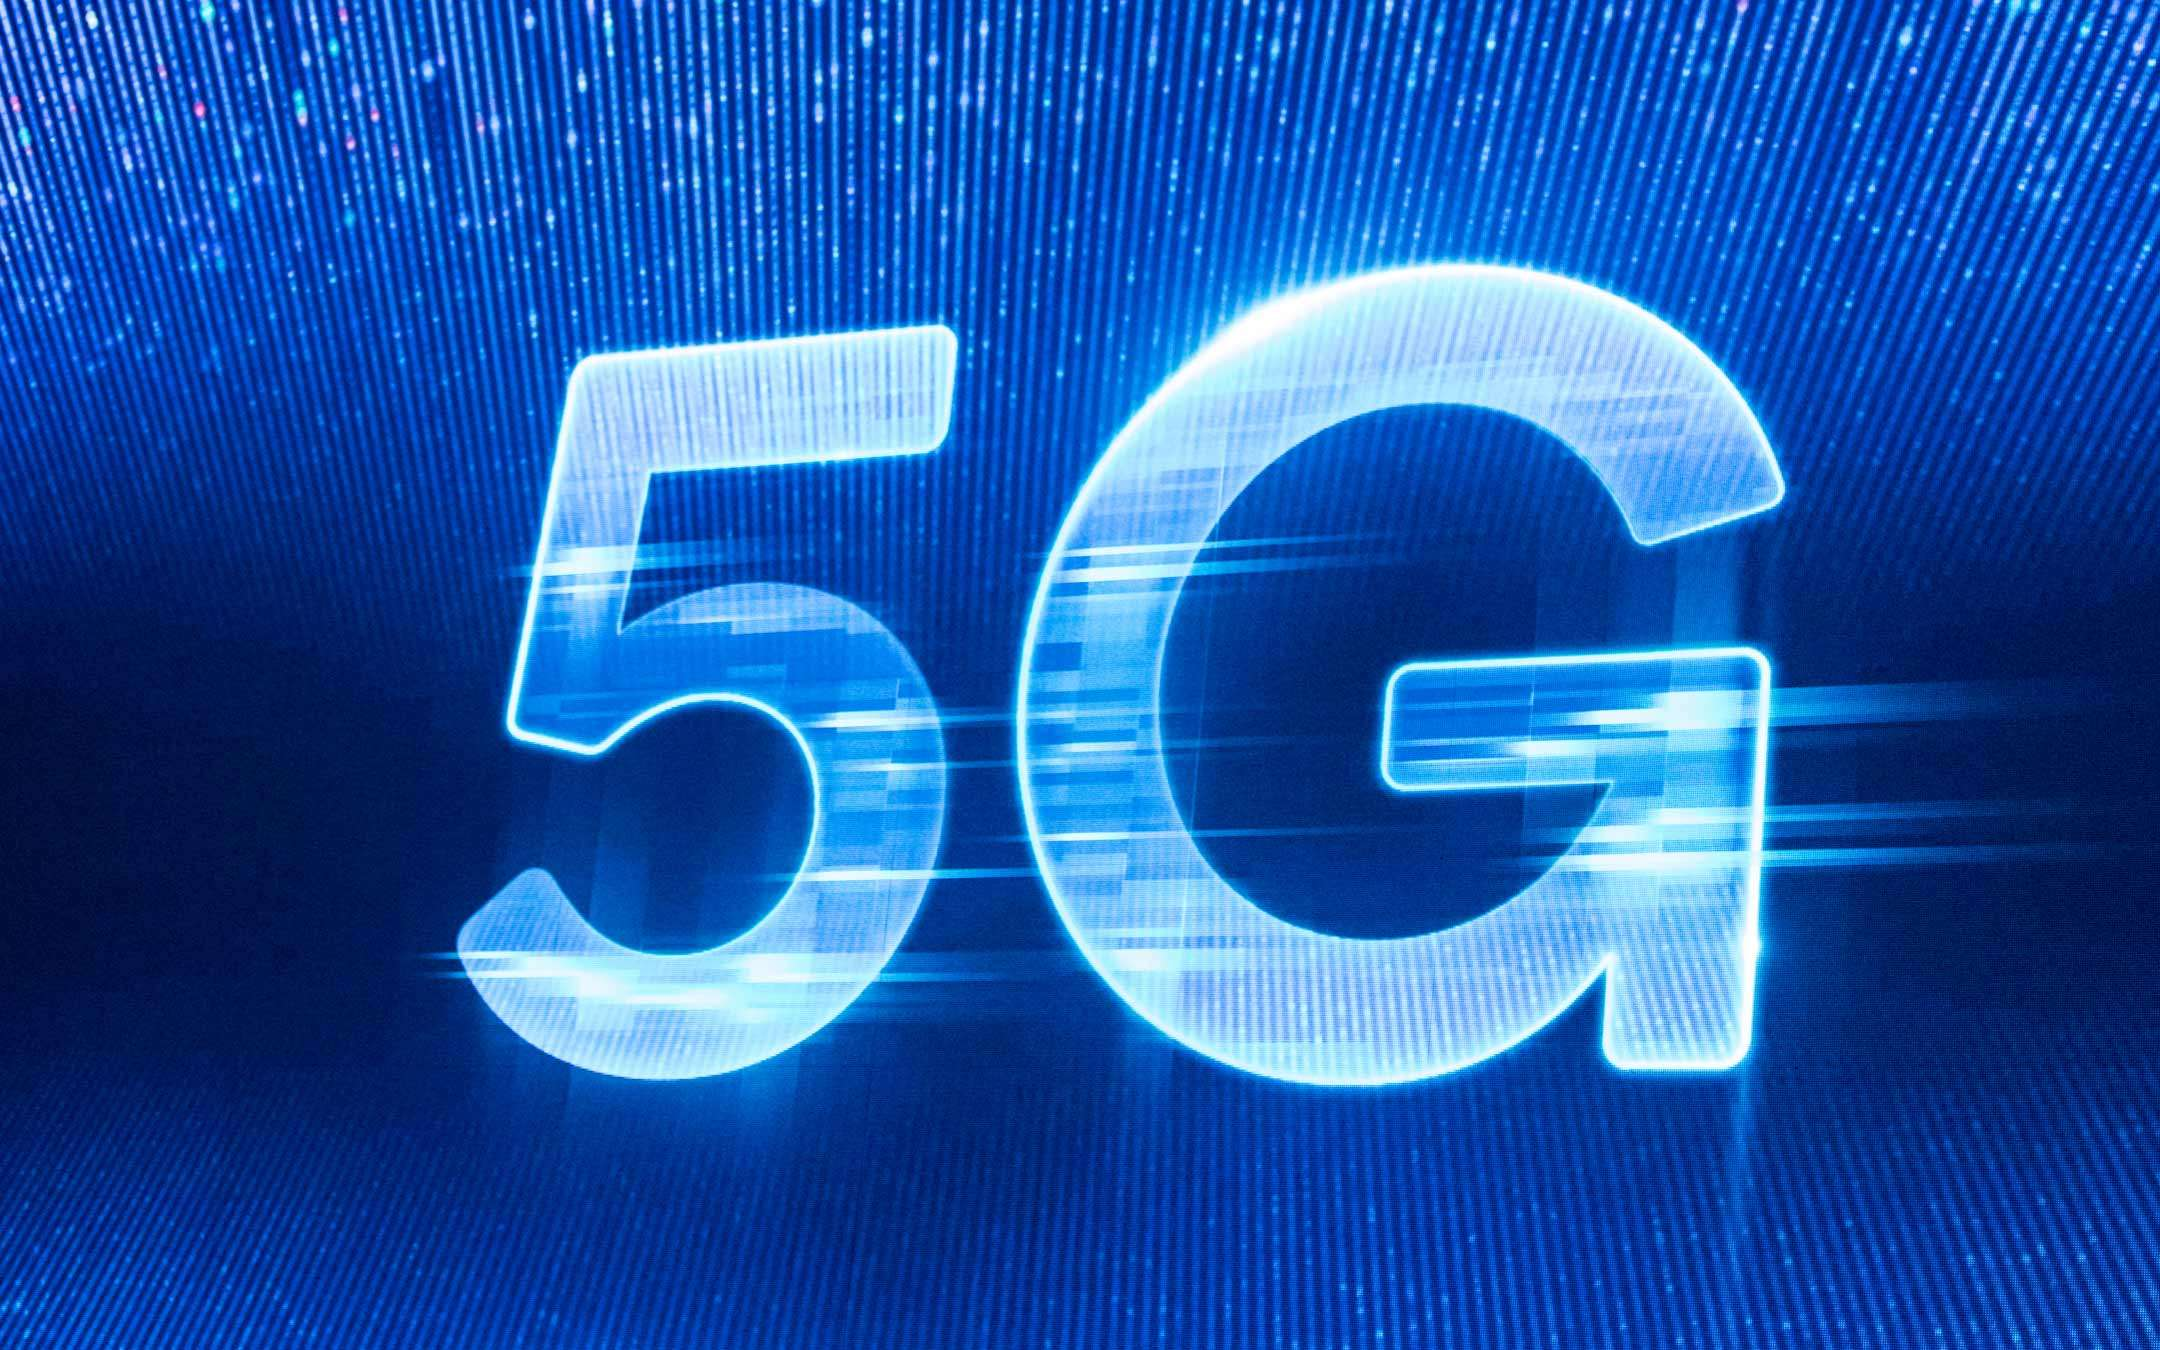 5G NR: first for Qualcomm, CS and Ericsson